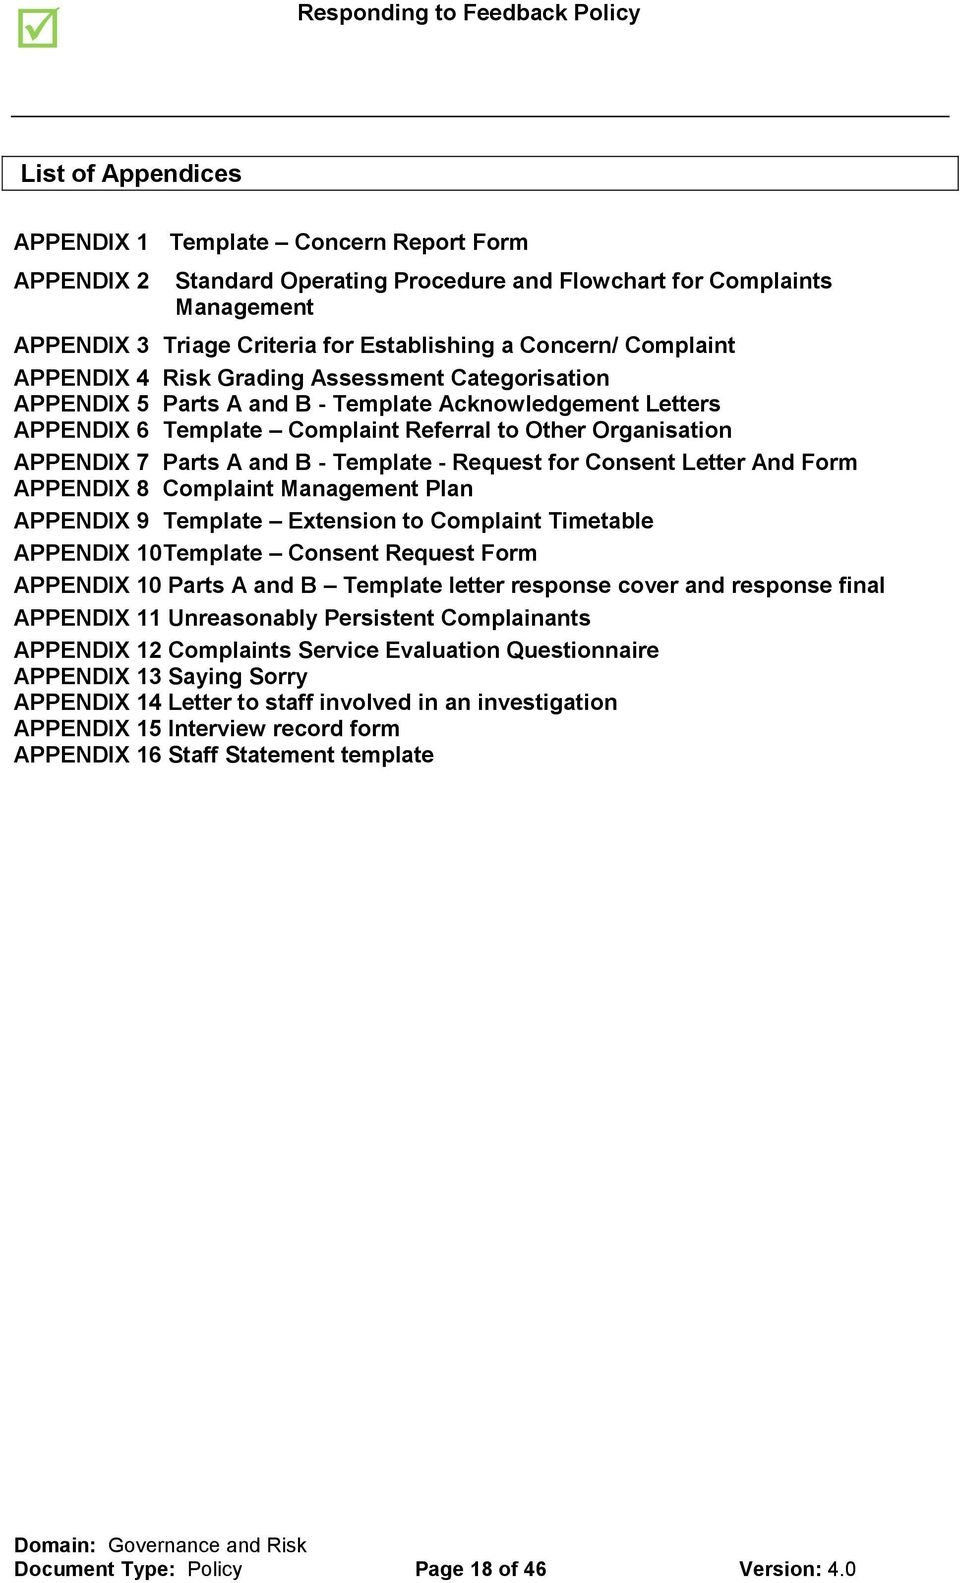 and B - Template - Request for Consent Letter And Form APPENDIX 8 Complaint Management Plan APPENDIX 9 Template Extension to Complaint Timetable APPENDIX 10 Template Consent Request Form APPENDIX 10